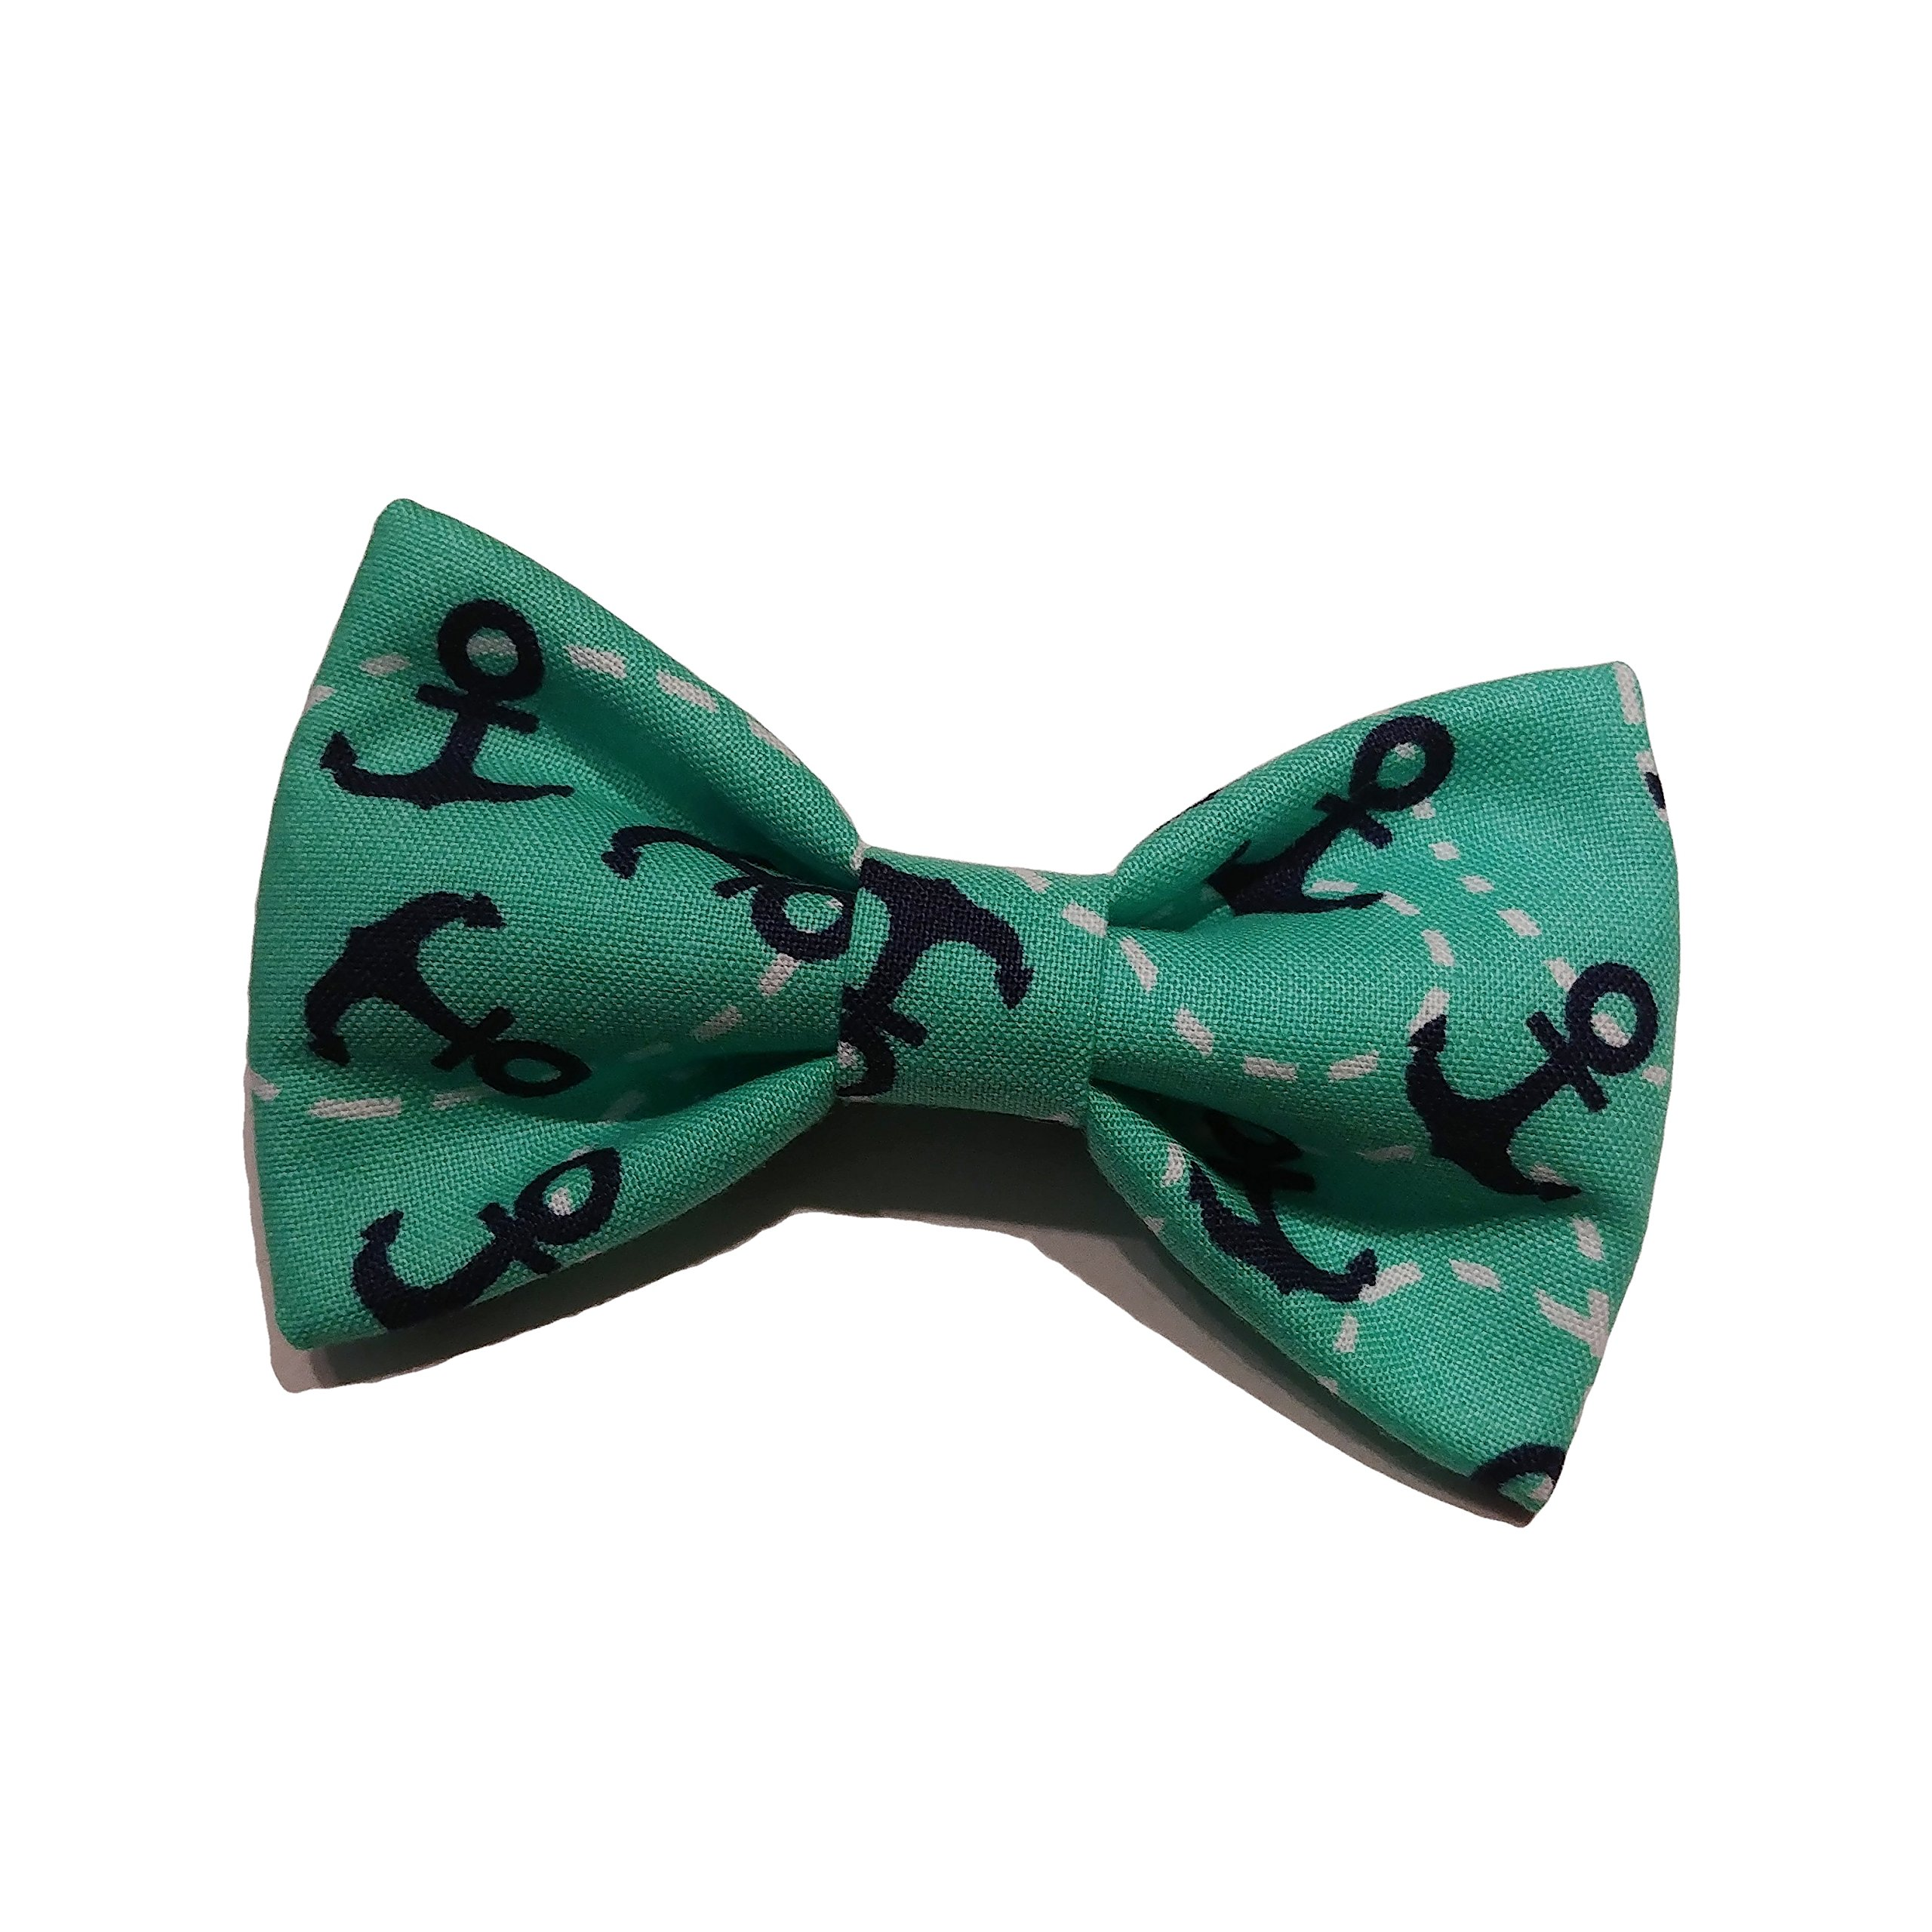 Anchors - Small Dog Bow Tie - Cat Bowtie